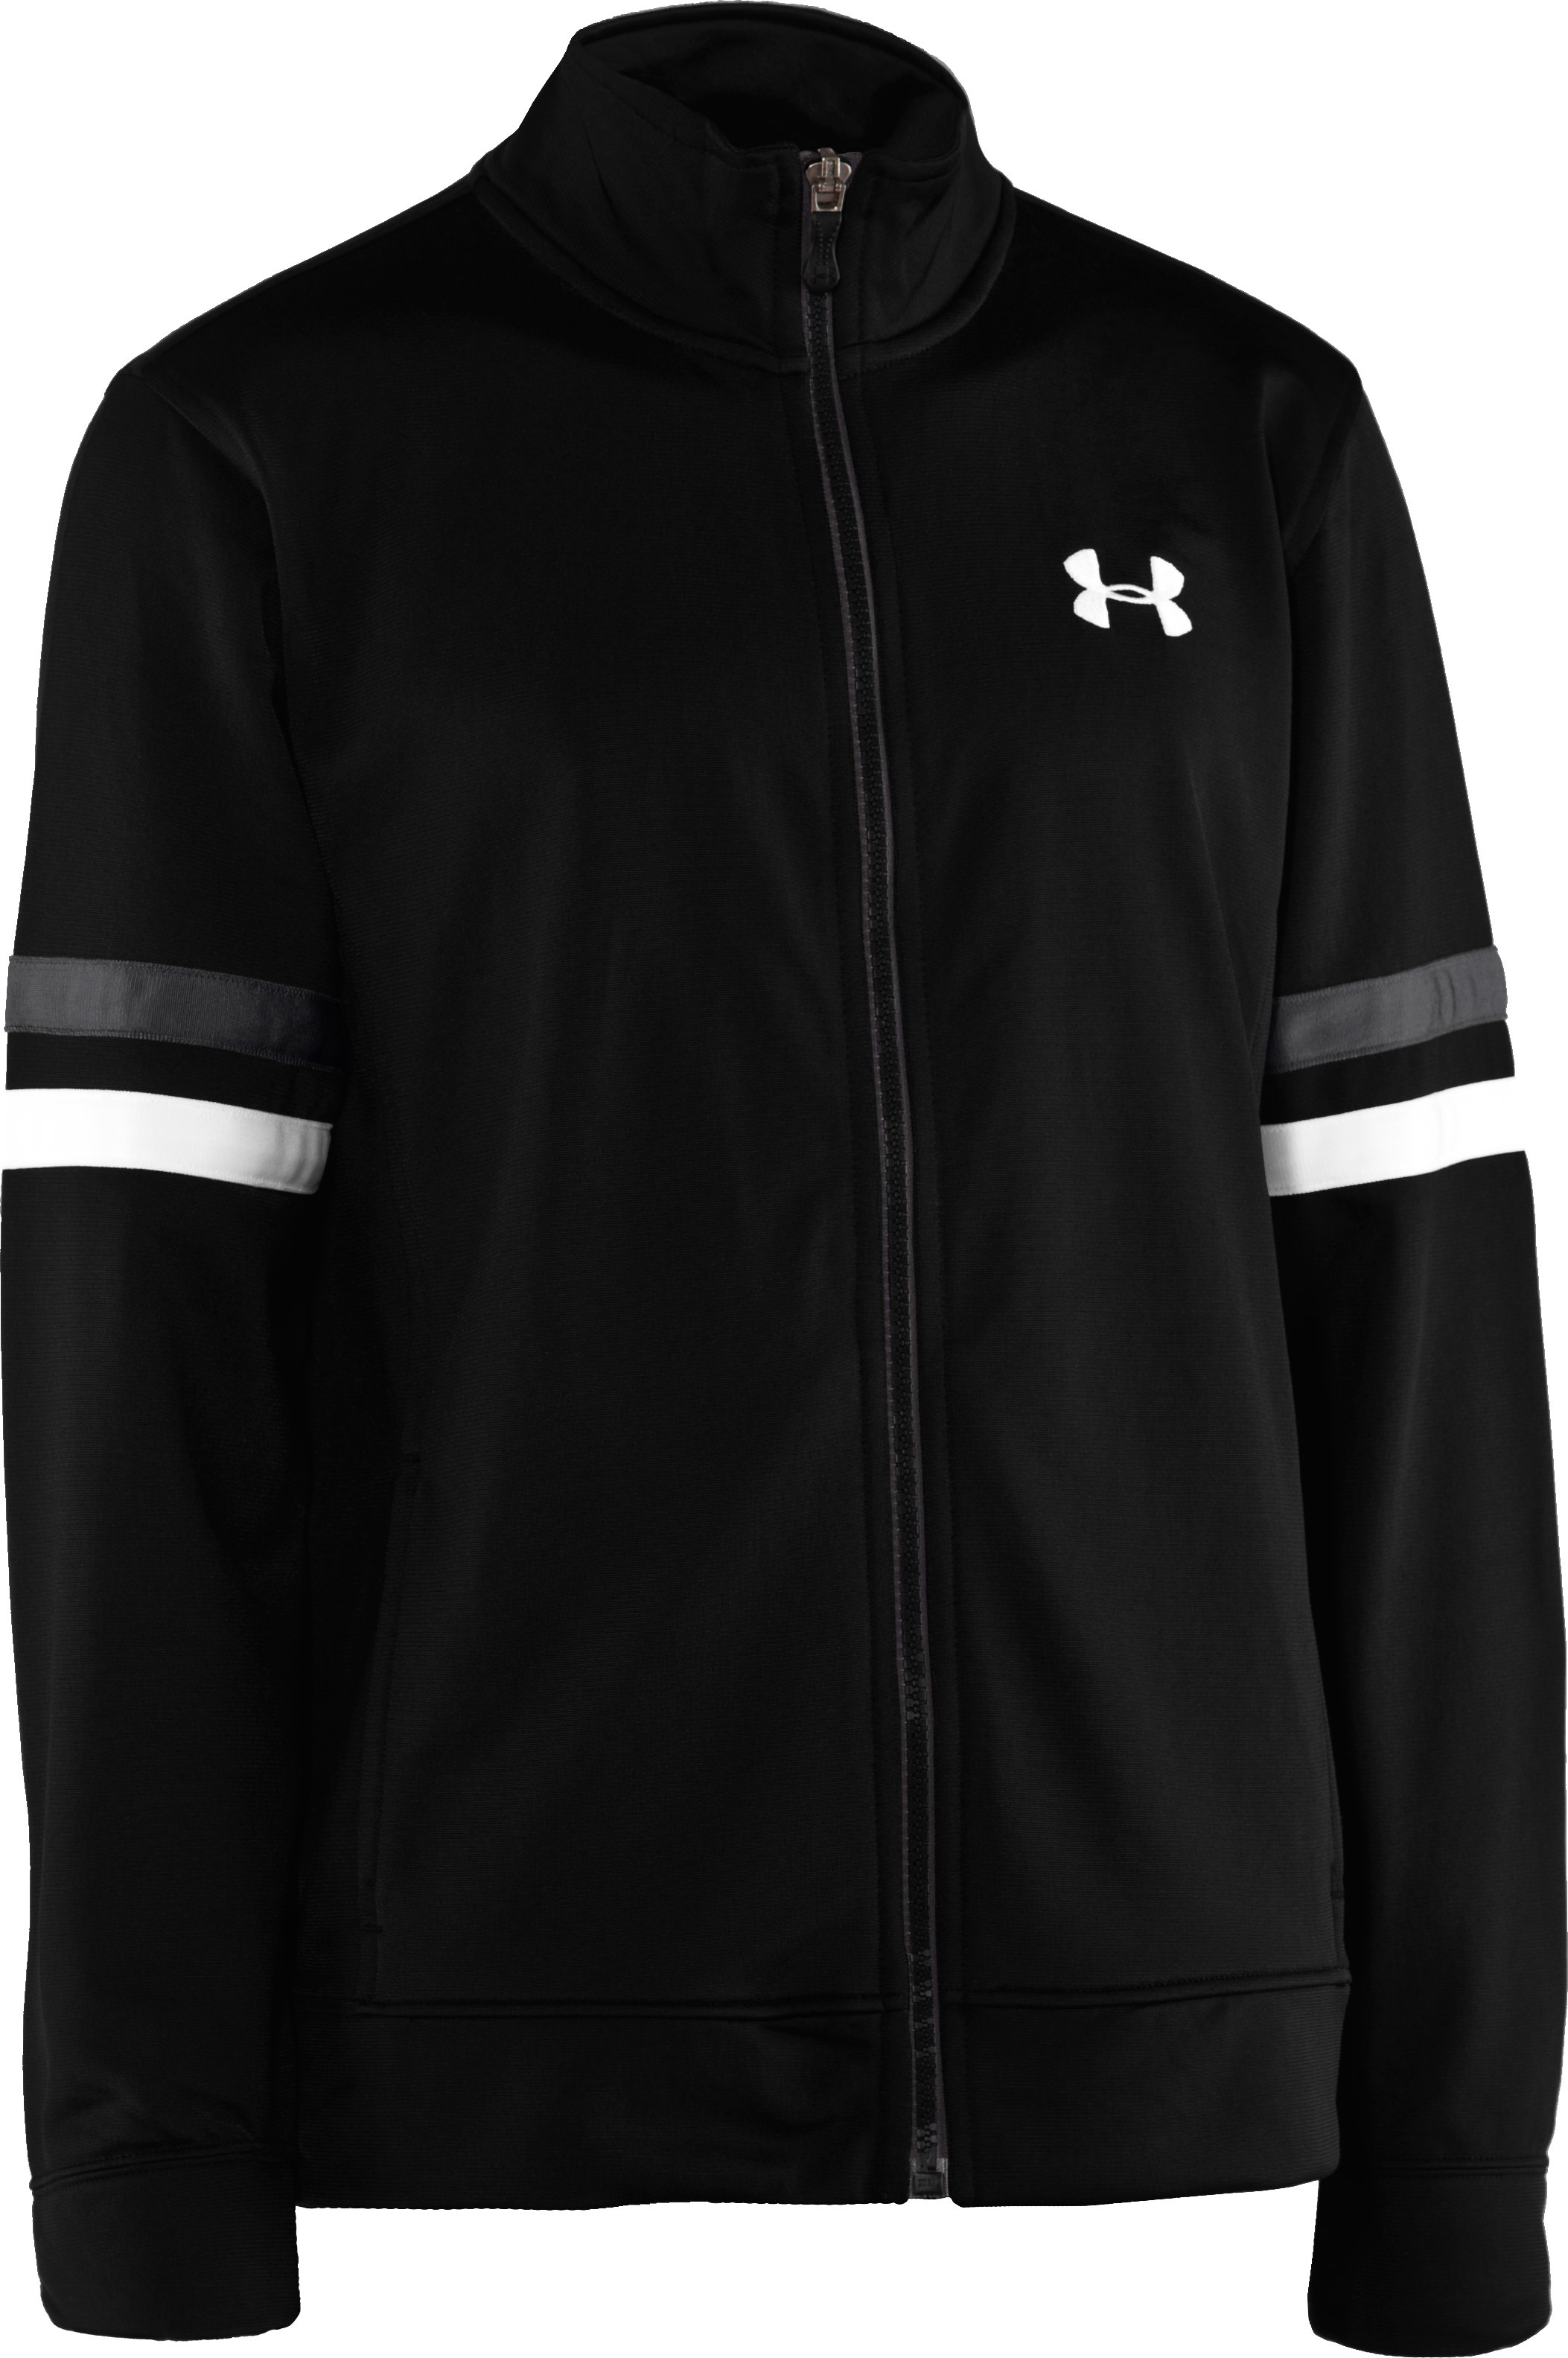 Boys' UA Brawler Warm-Up Jacket, Black , zoomed image